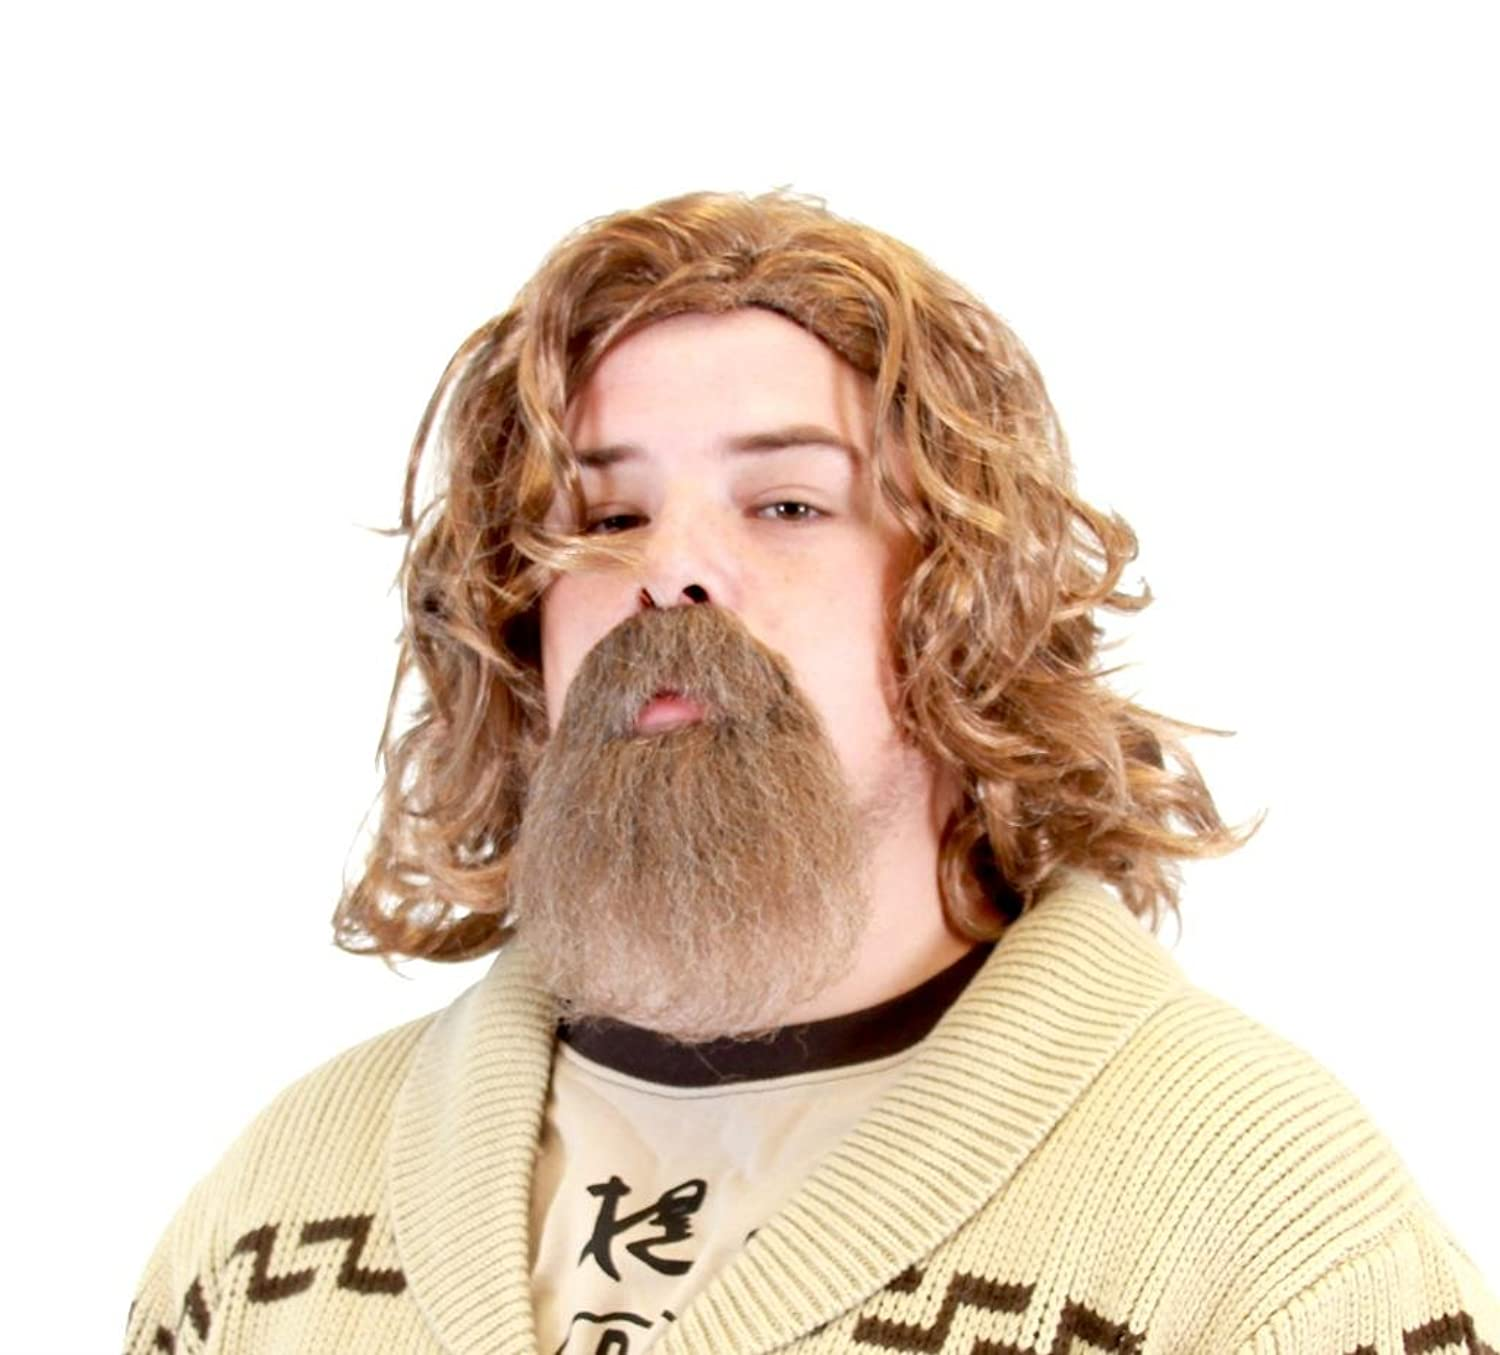 The Big Lebowski Dude Wig and Goatee Costume Set: Amazon.co.uk: Clothing